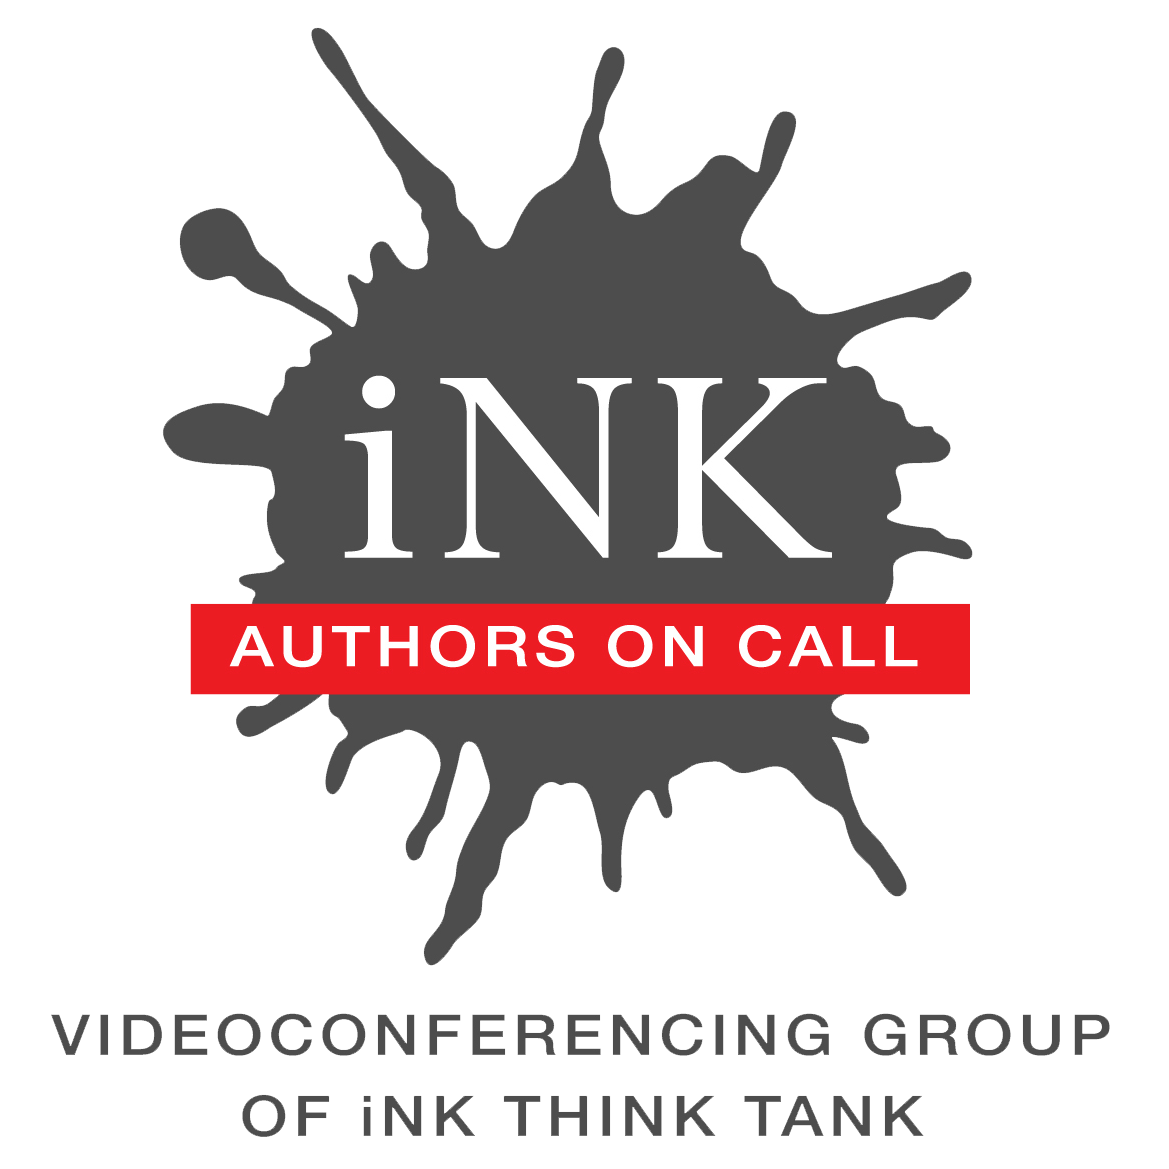 Authors on Call, iNK Think Tank